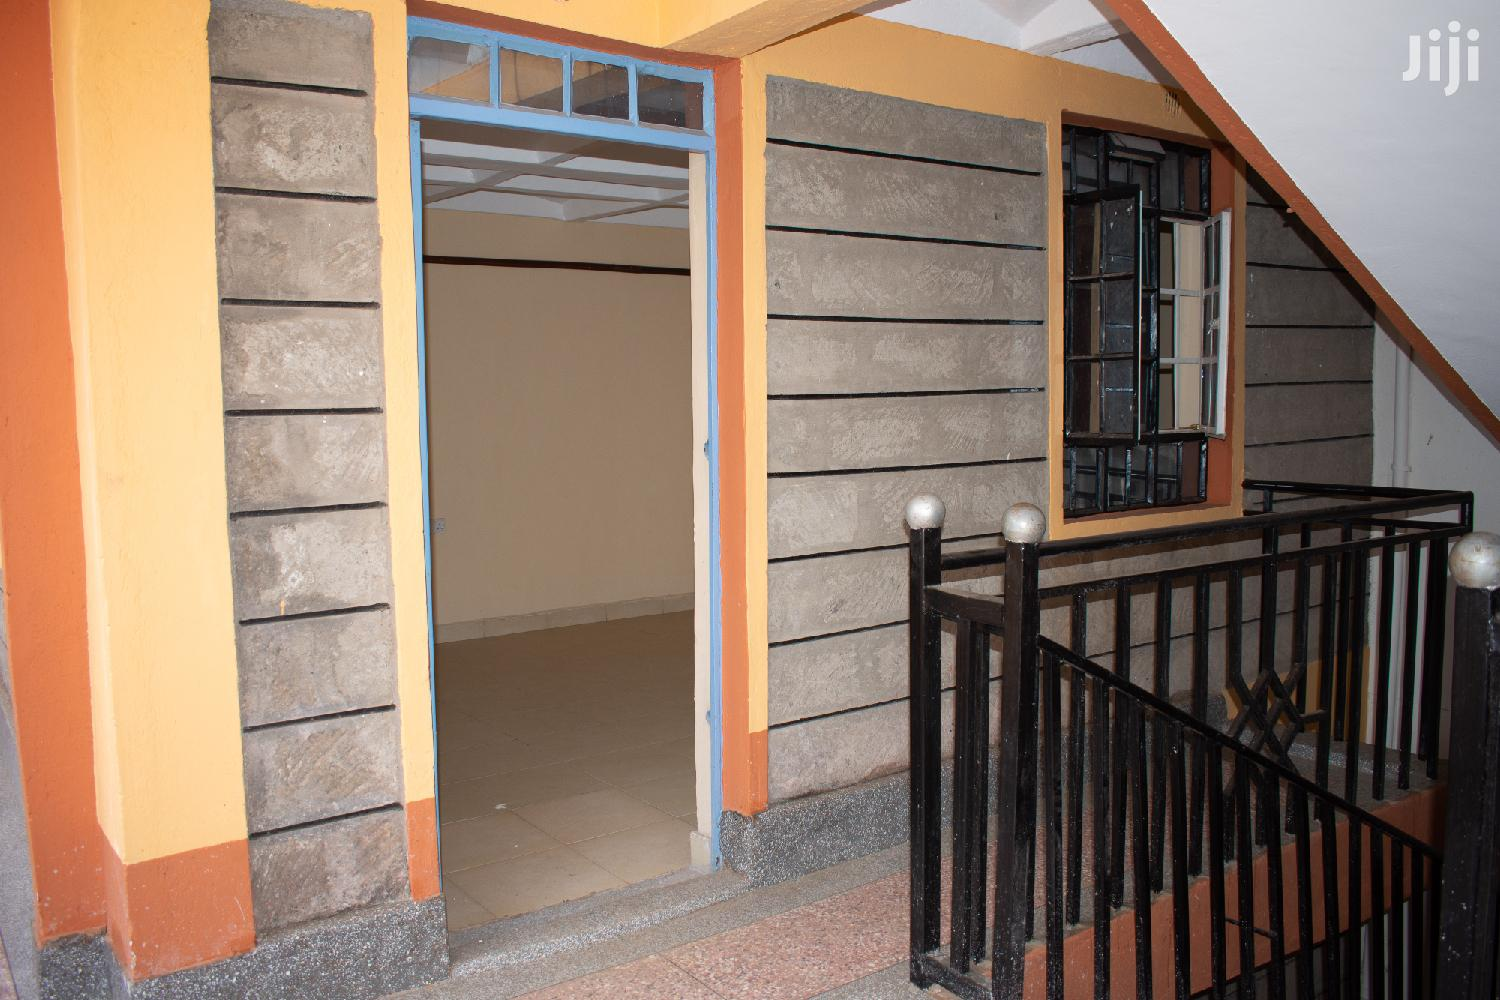 One Bedroom To Let | Houses & Apartments For Rent for sale in Kahawa West, Nairobi, Kenya